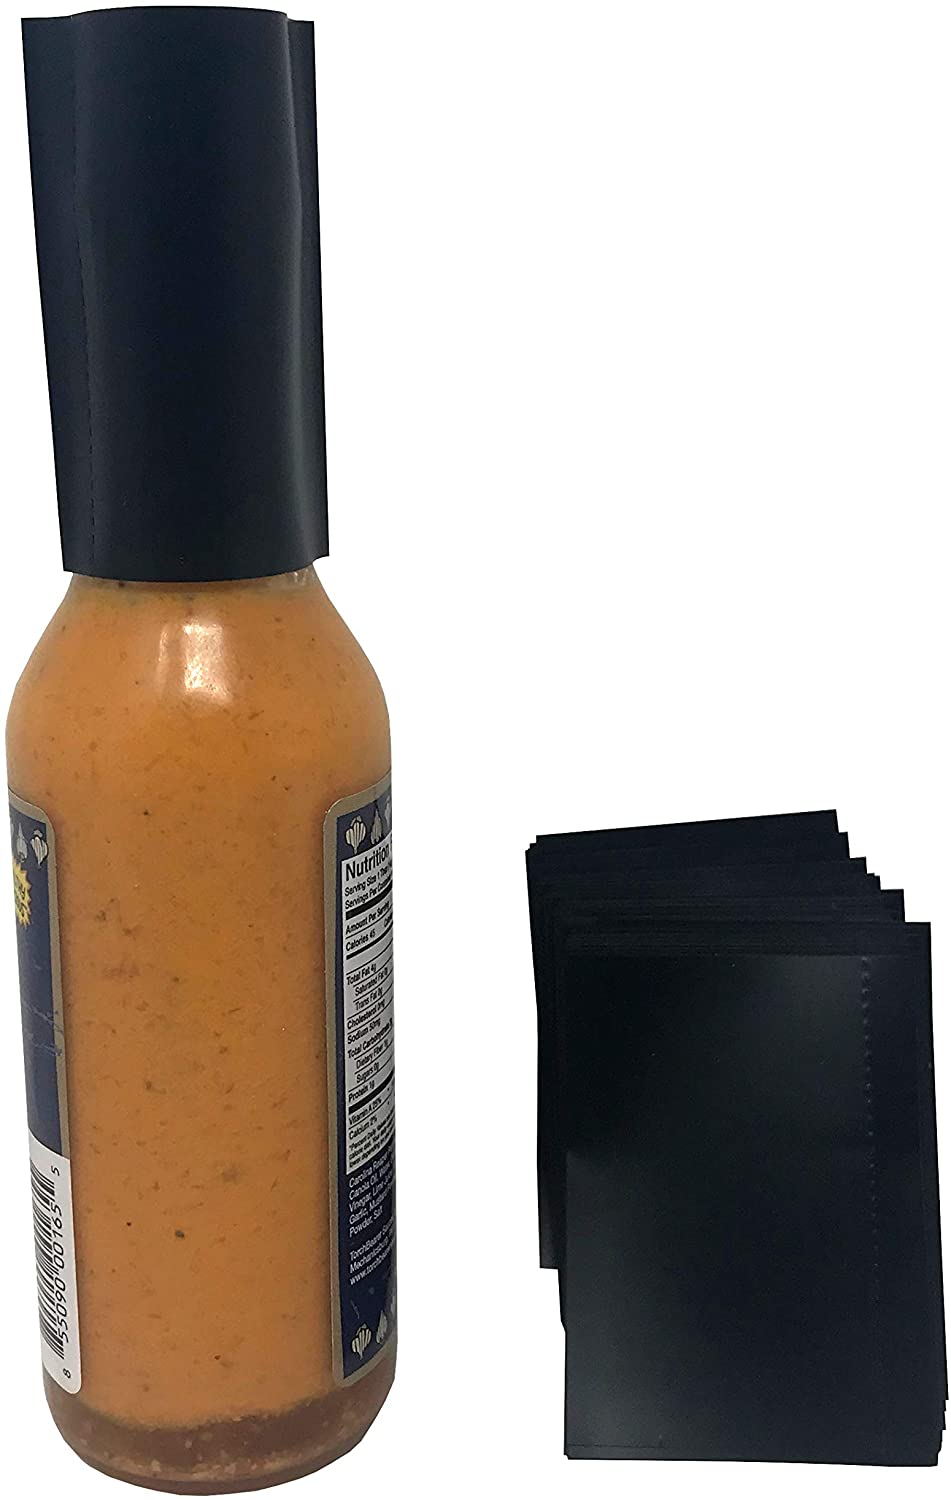 45 x 62 mm Matte Black Perforated Shrink Band for Hot Sauce Bottles and Other Liquid Bottles Fits 3/4